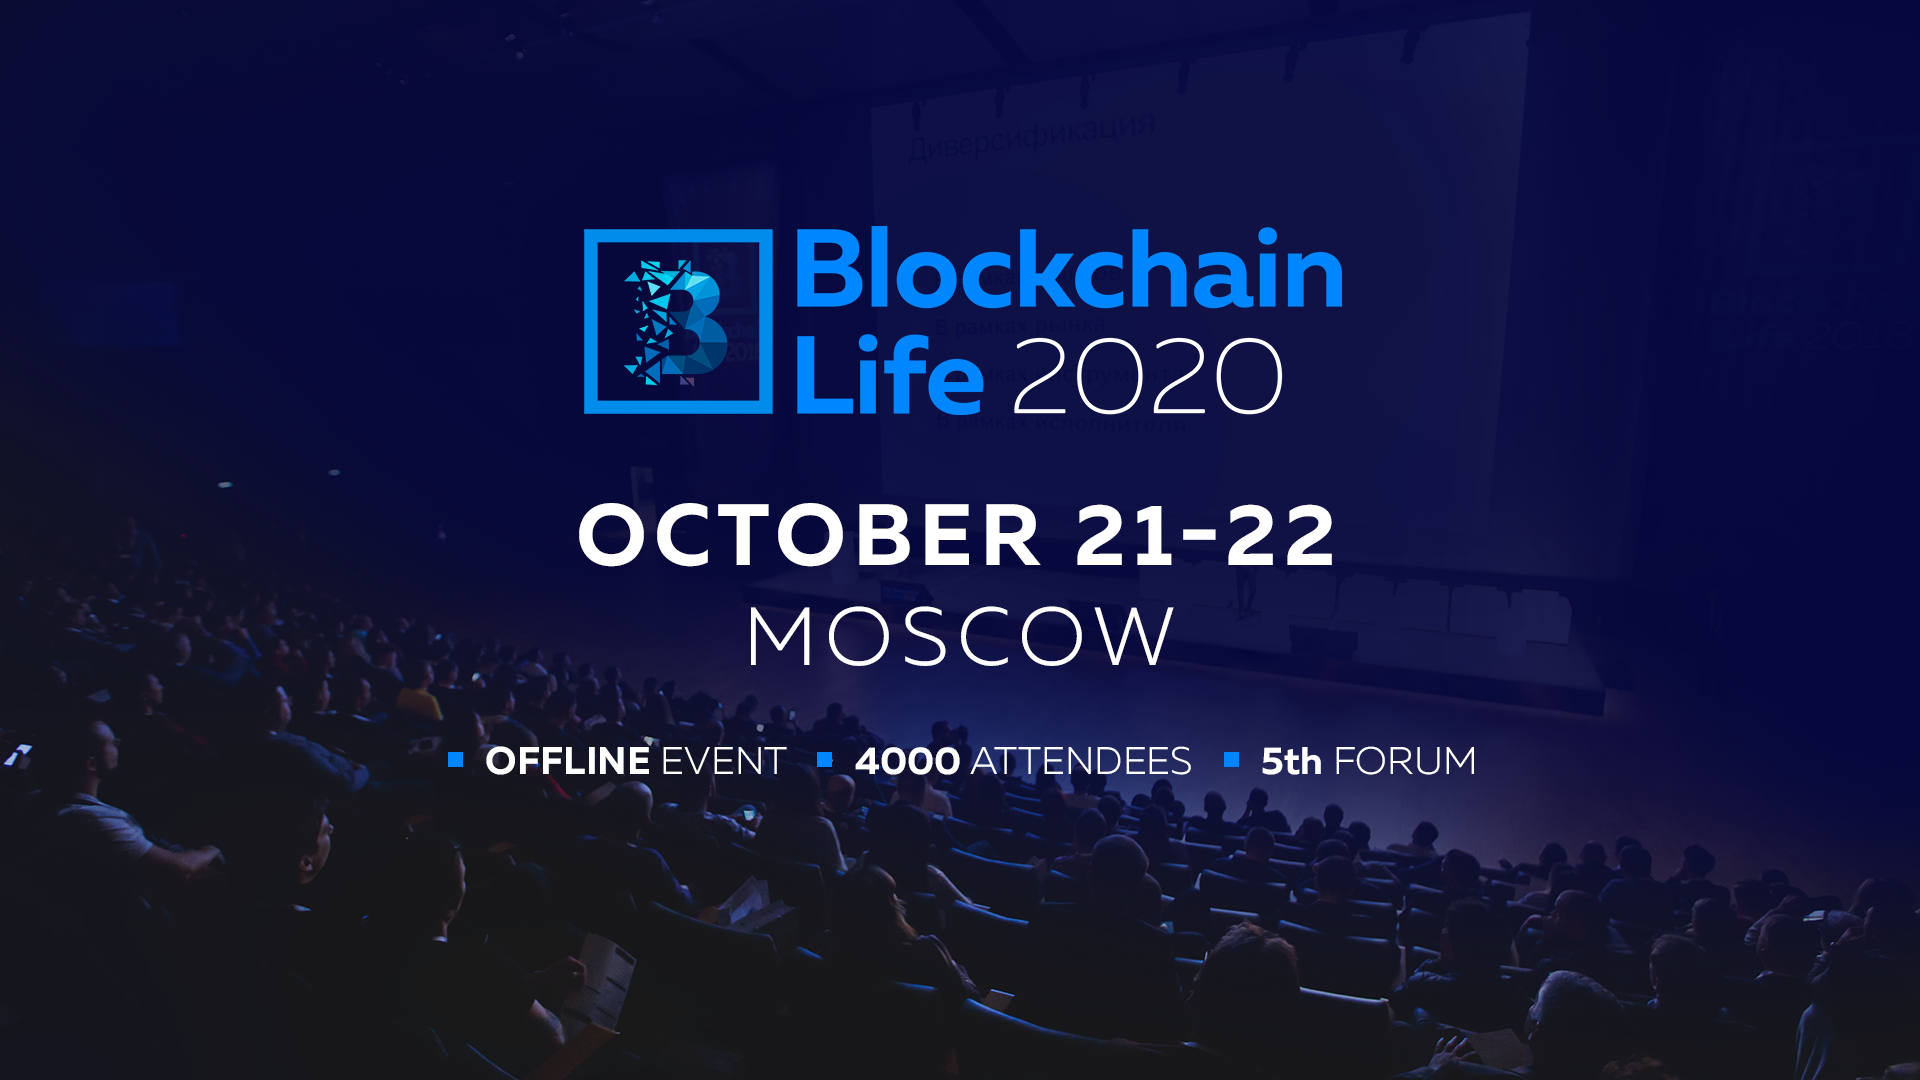 blockchain-life-2020-_-global-forum-in-moscow-russia-platincoinsite.blog_